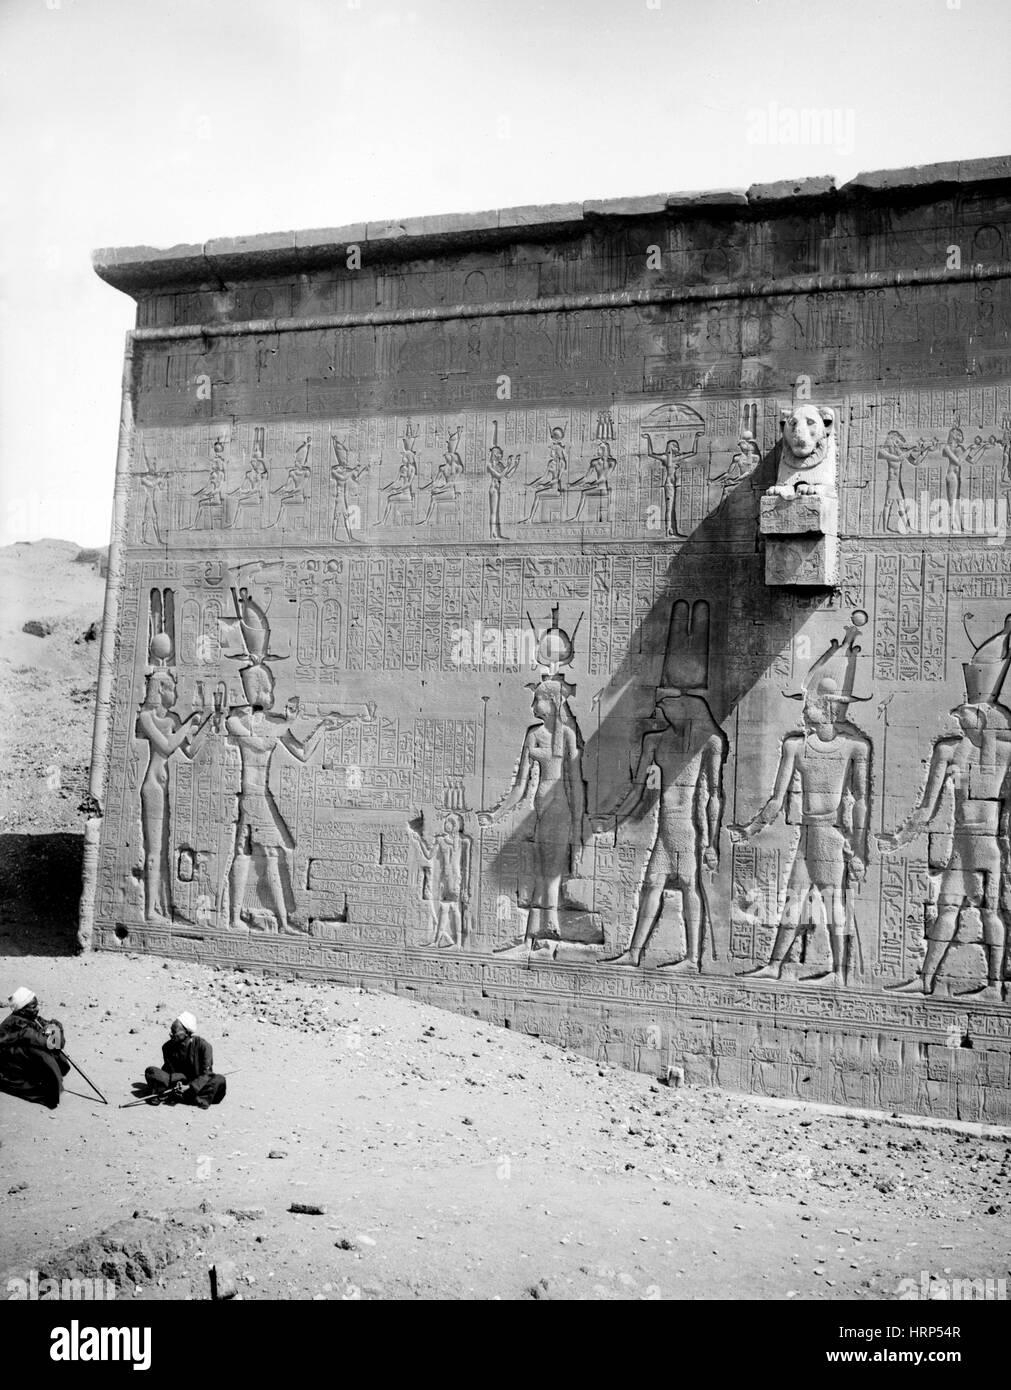 Temple of Hathor, Early 20th Century - Stock Image